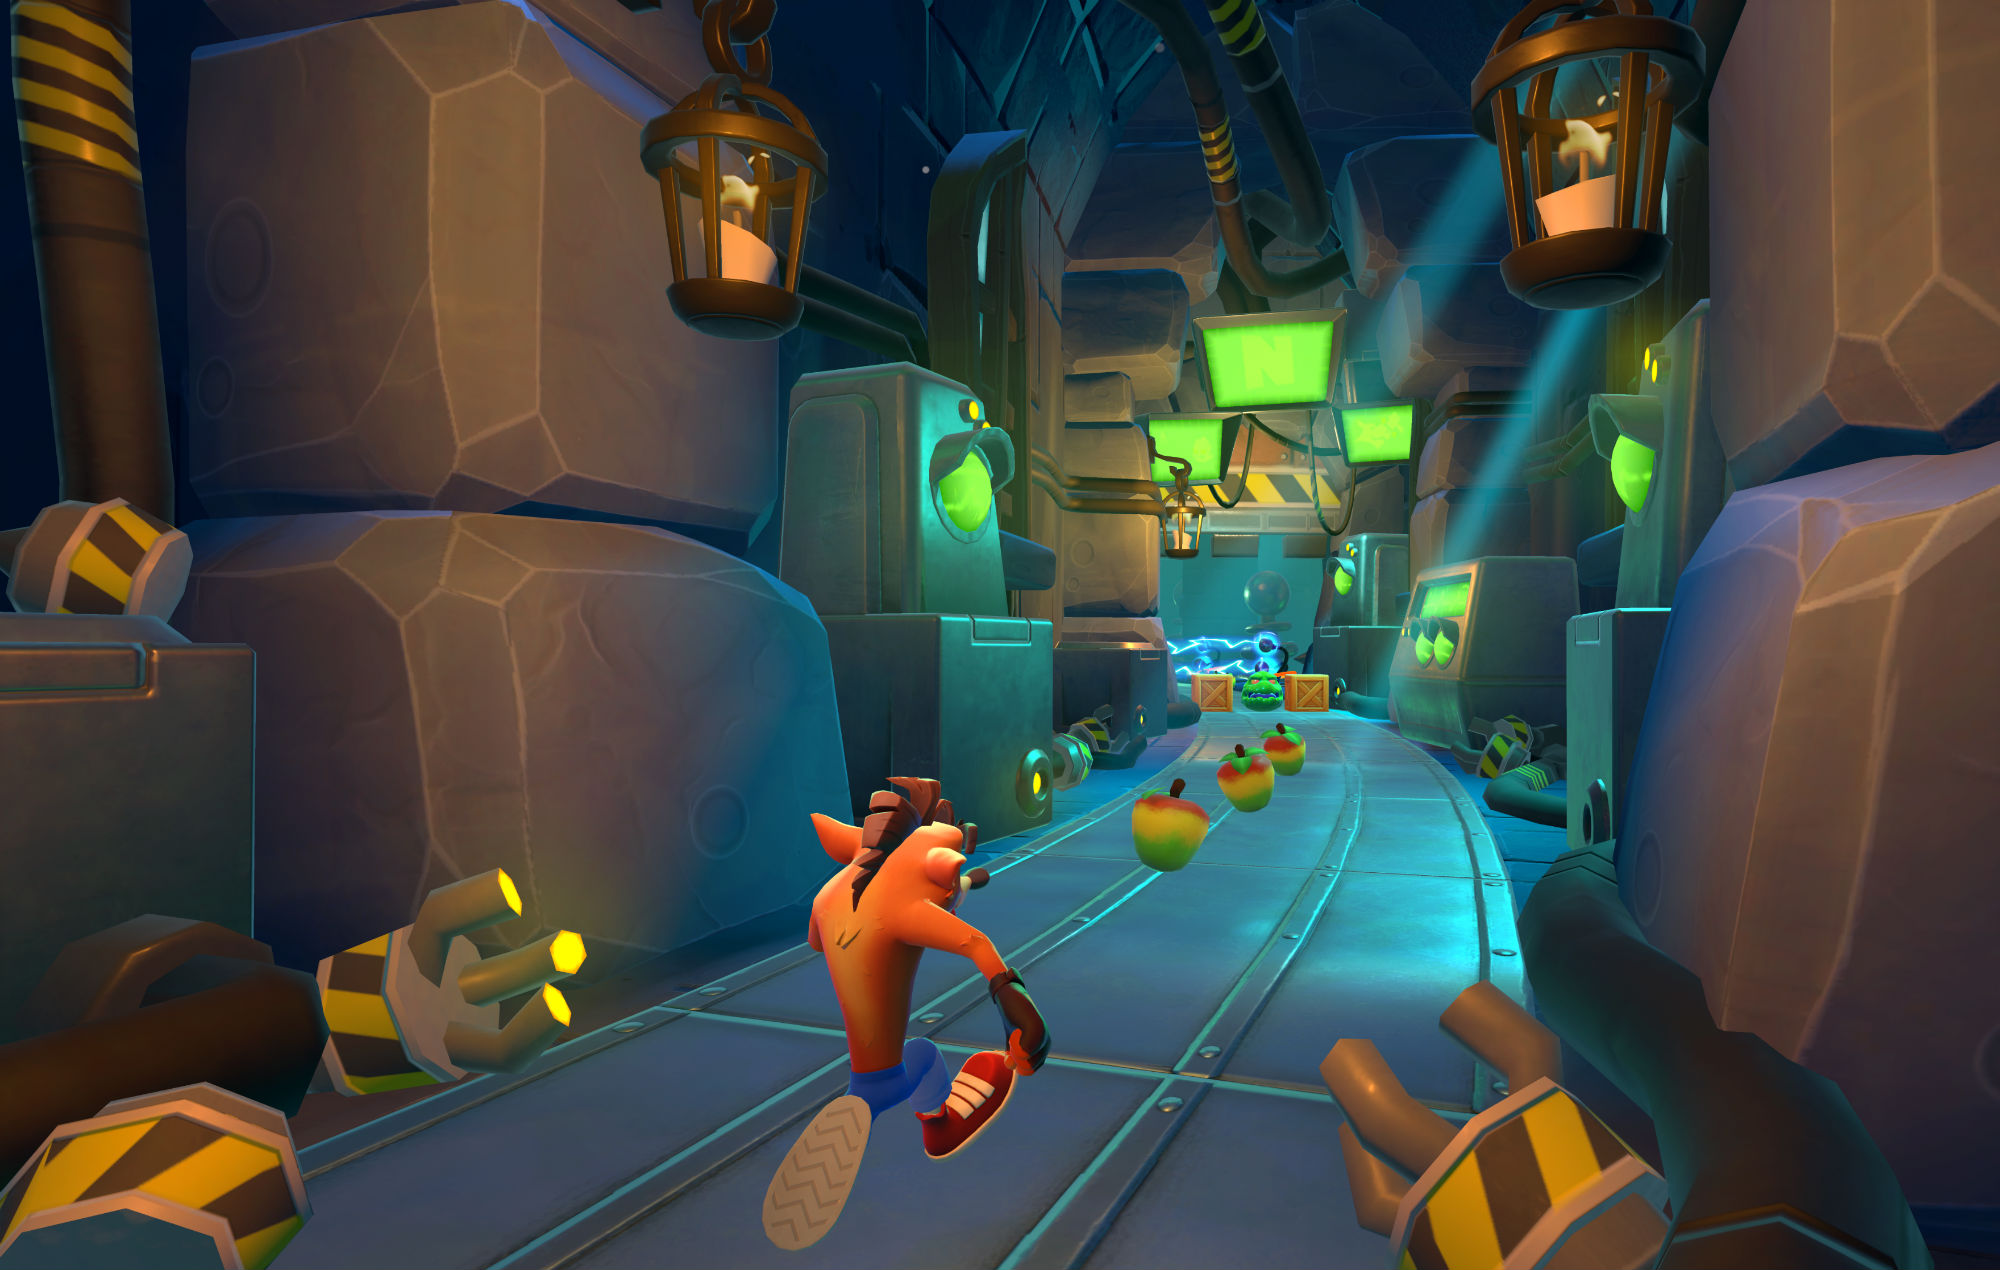 Crash Bandicoot: On the Run release date finally revealed